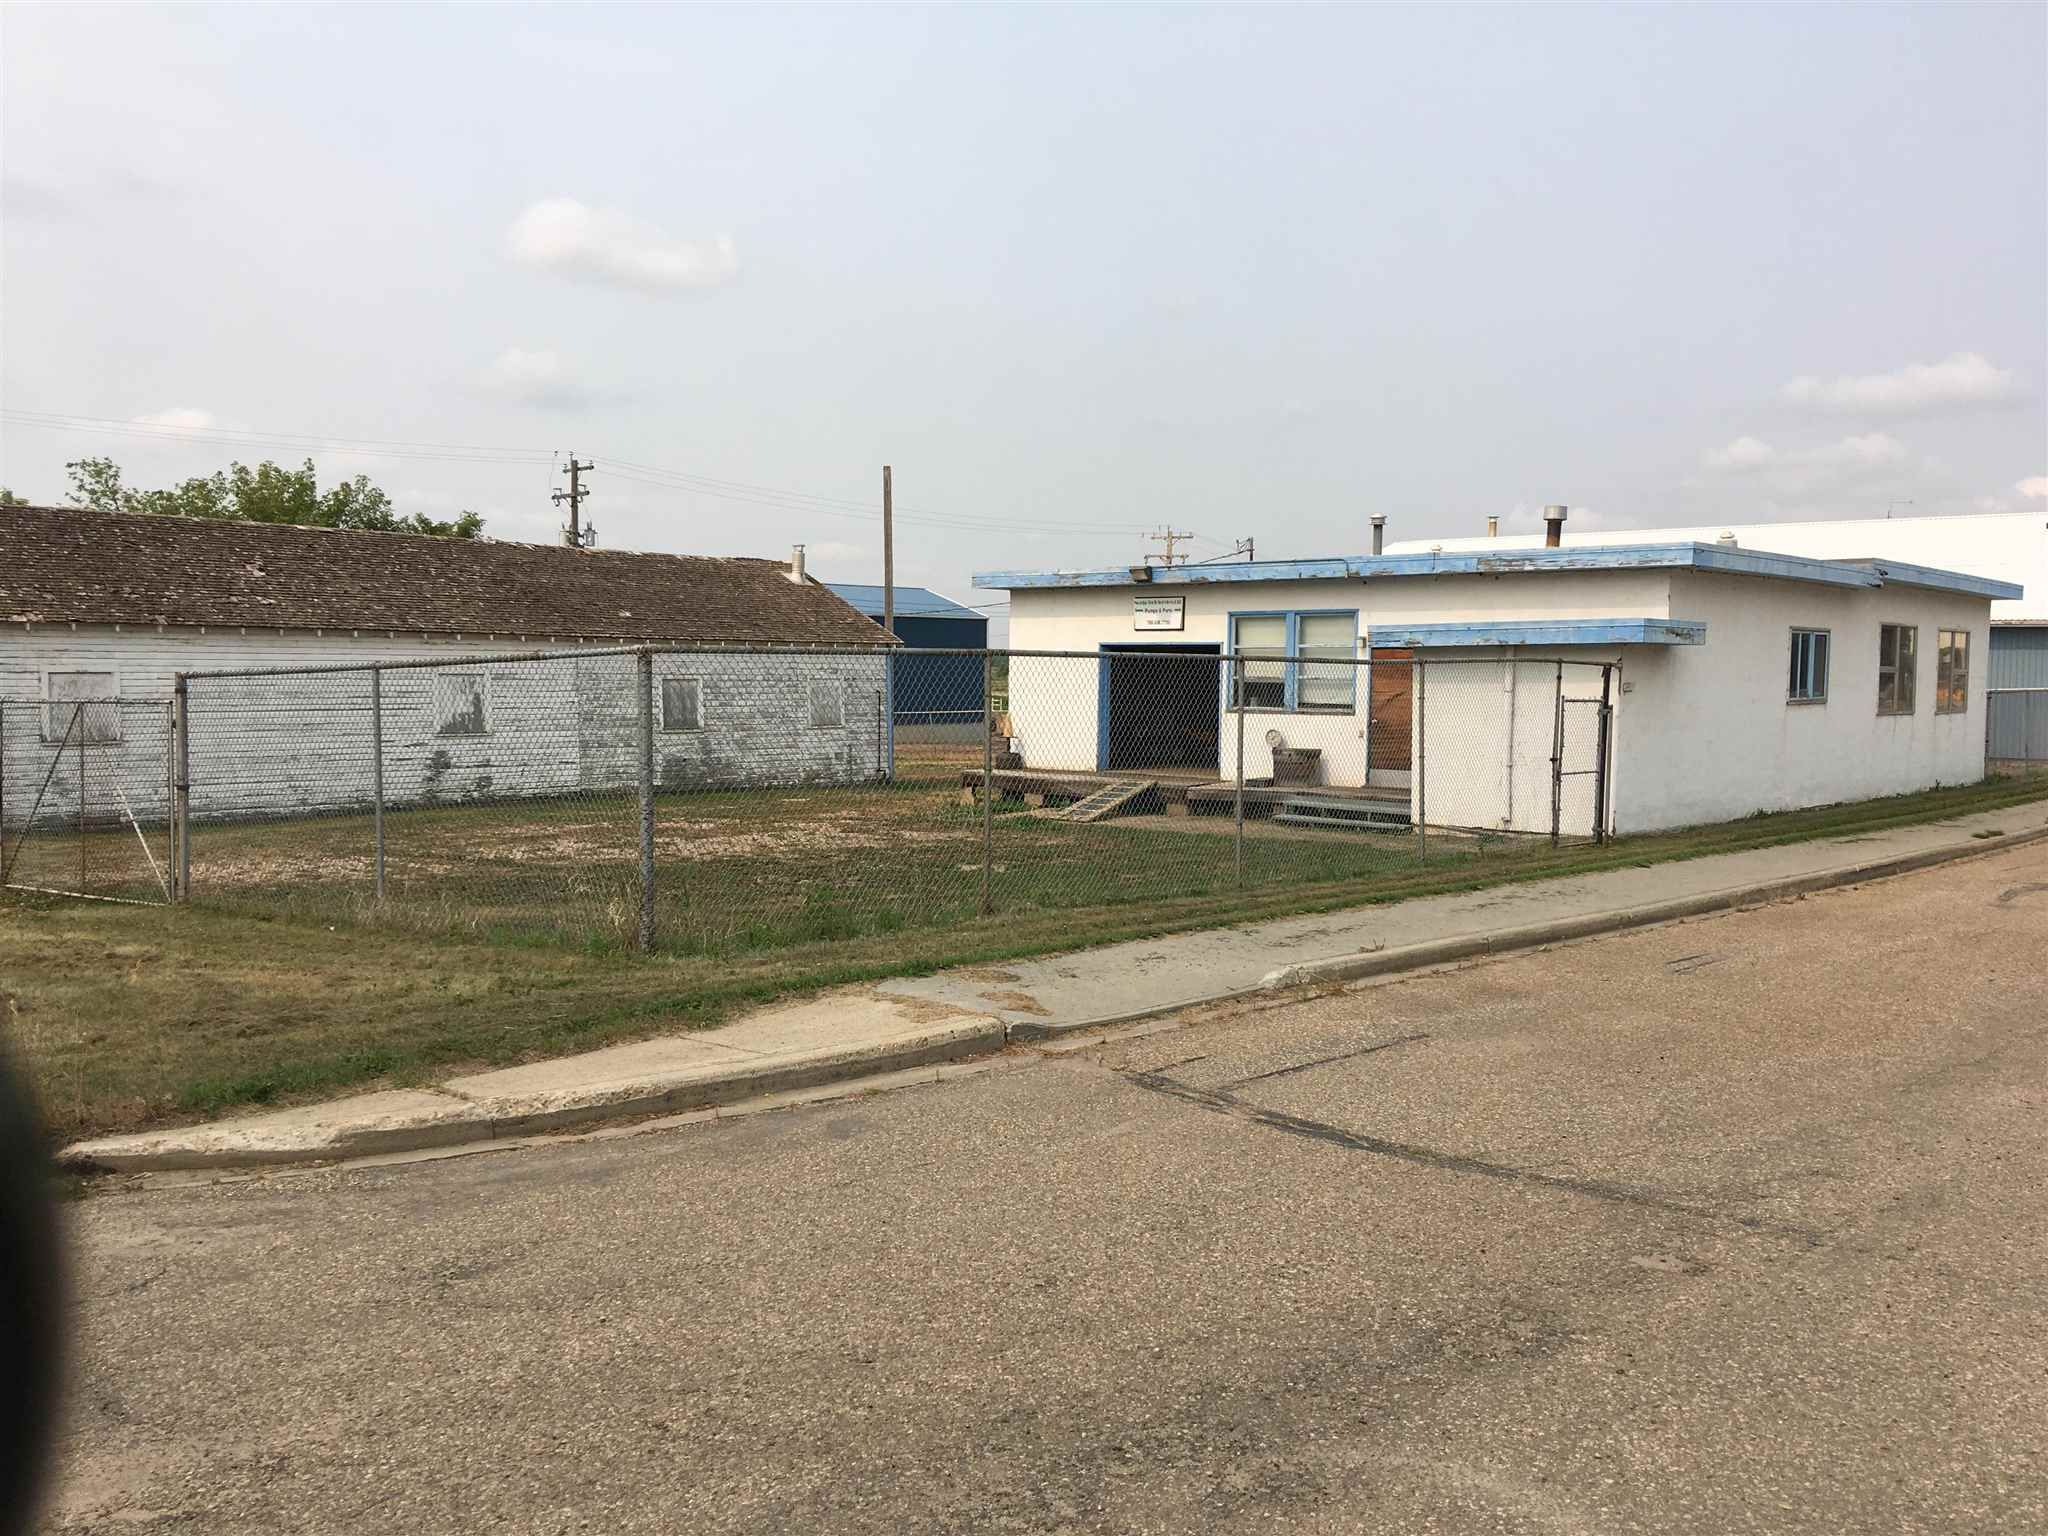 Main Photo: 4911 49 Avenue: Holden Land Commercial for sale : MLS®# E4258237